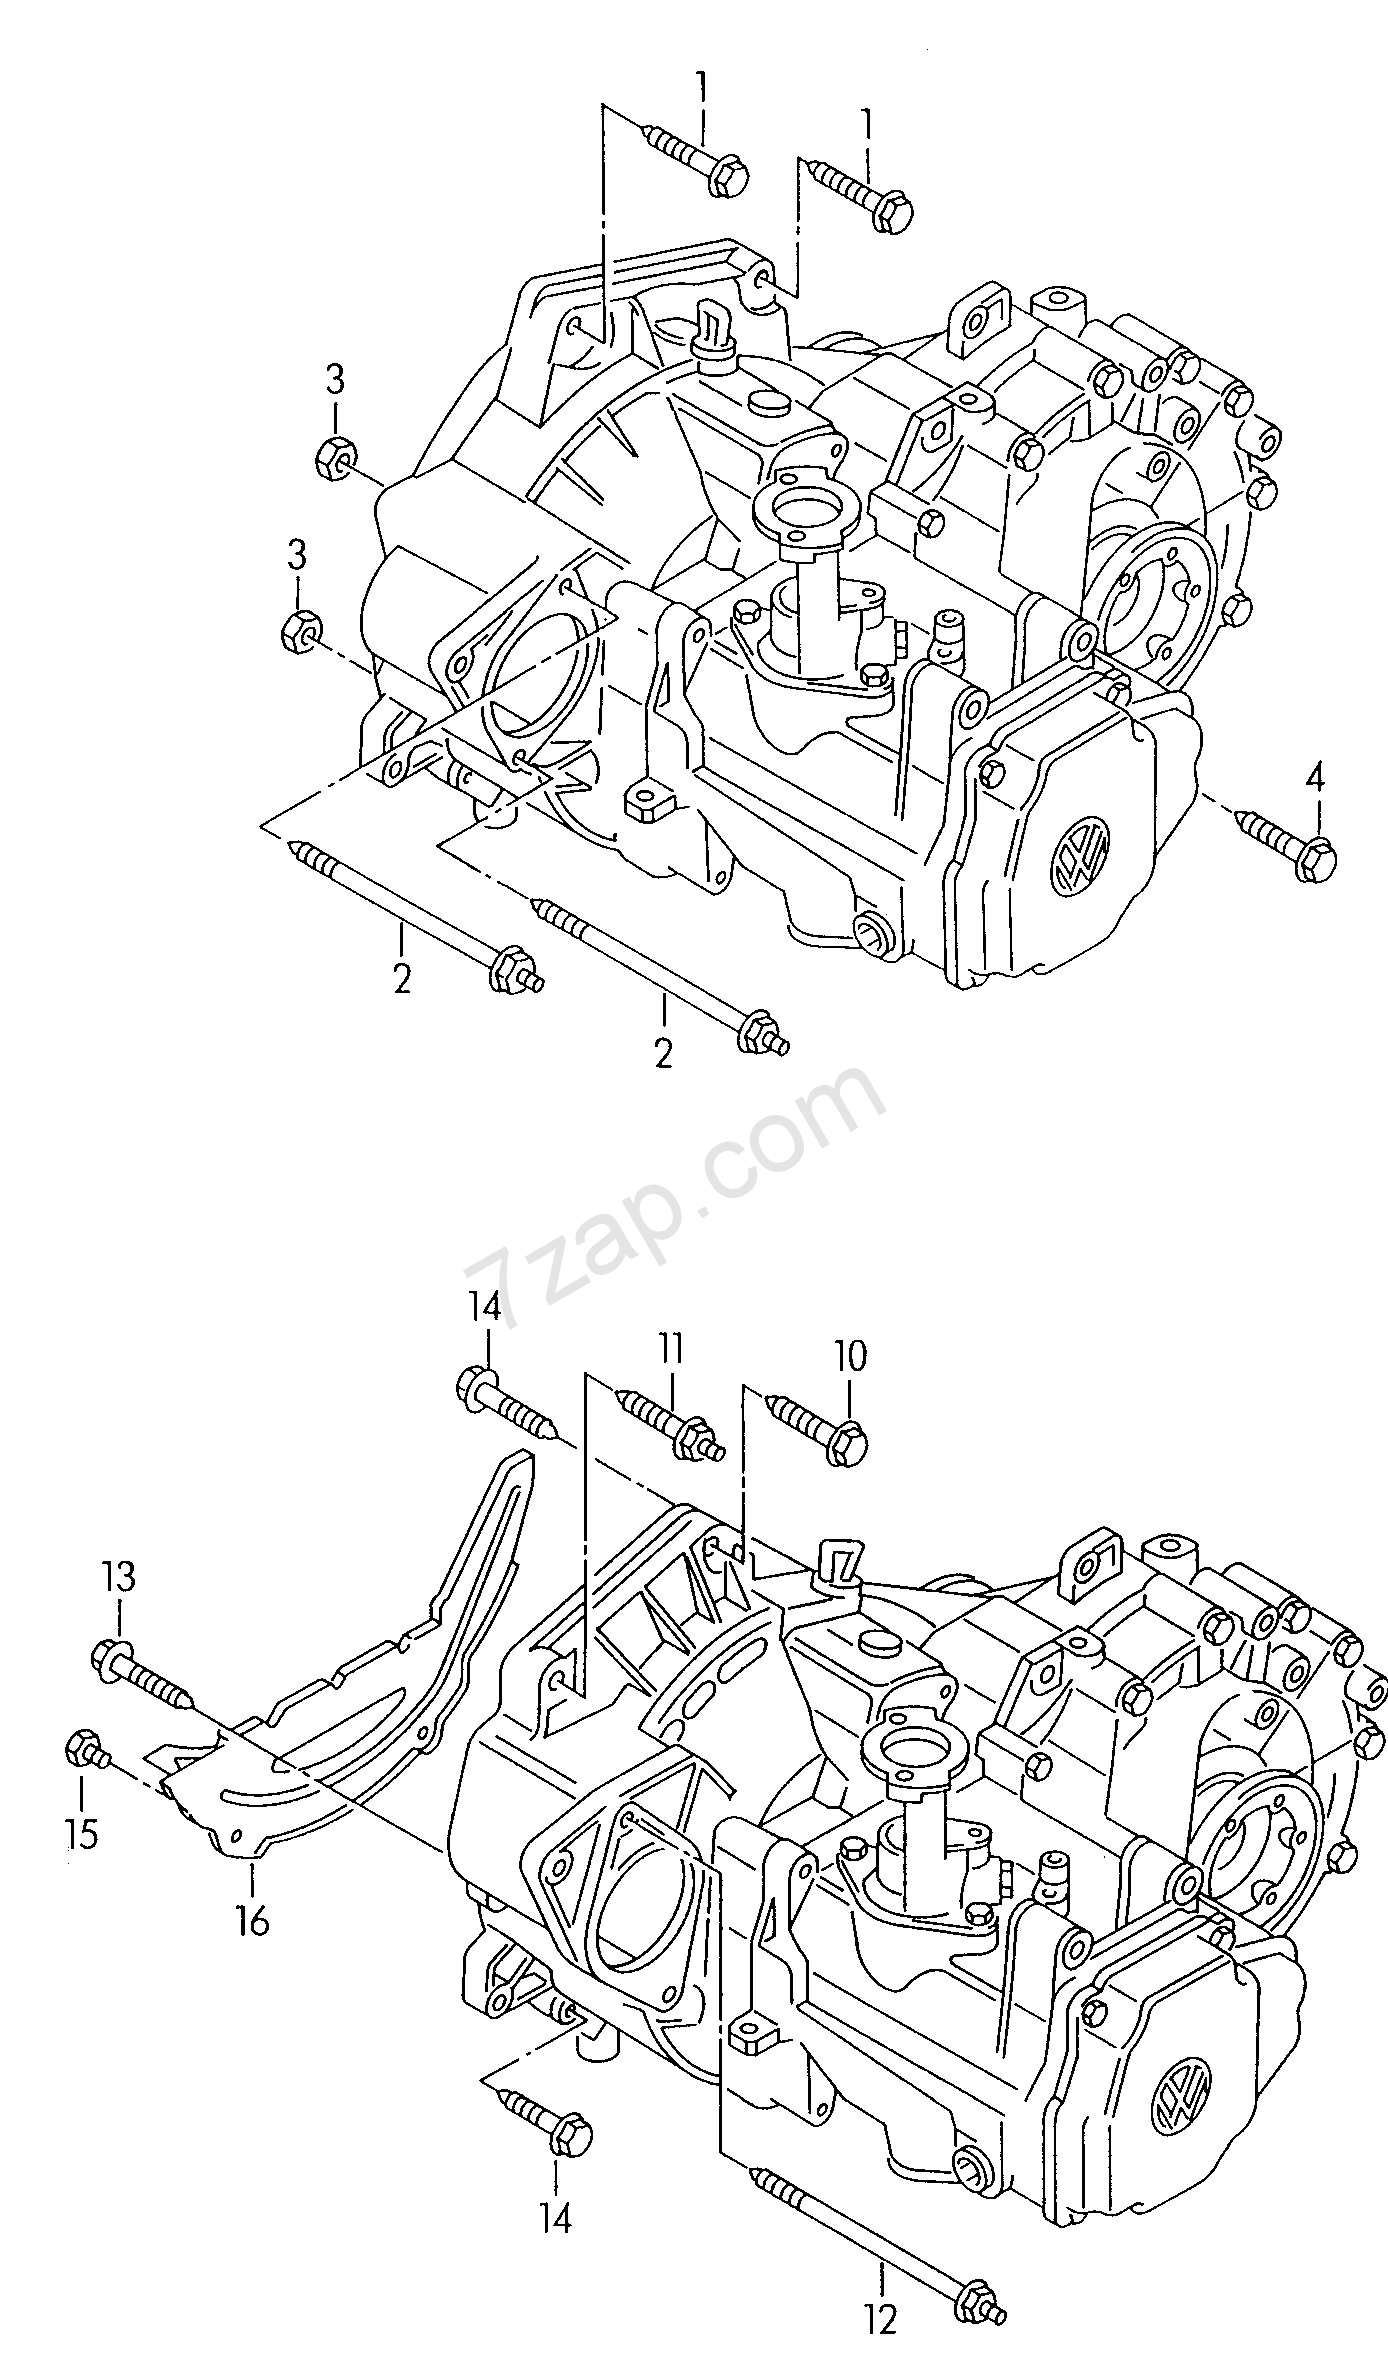 mounting parts for engine and transmission; 5-spe... - Audi TT/TTS  Coupe/Roadster(ATT) [ARGENTINA 2003 year]